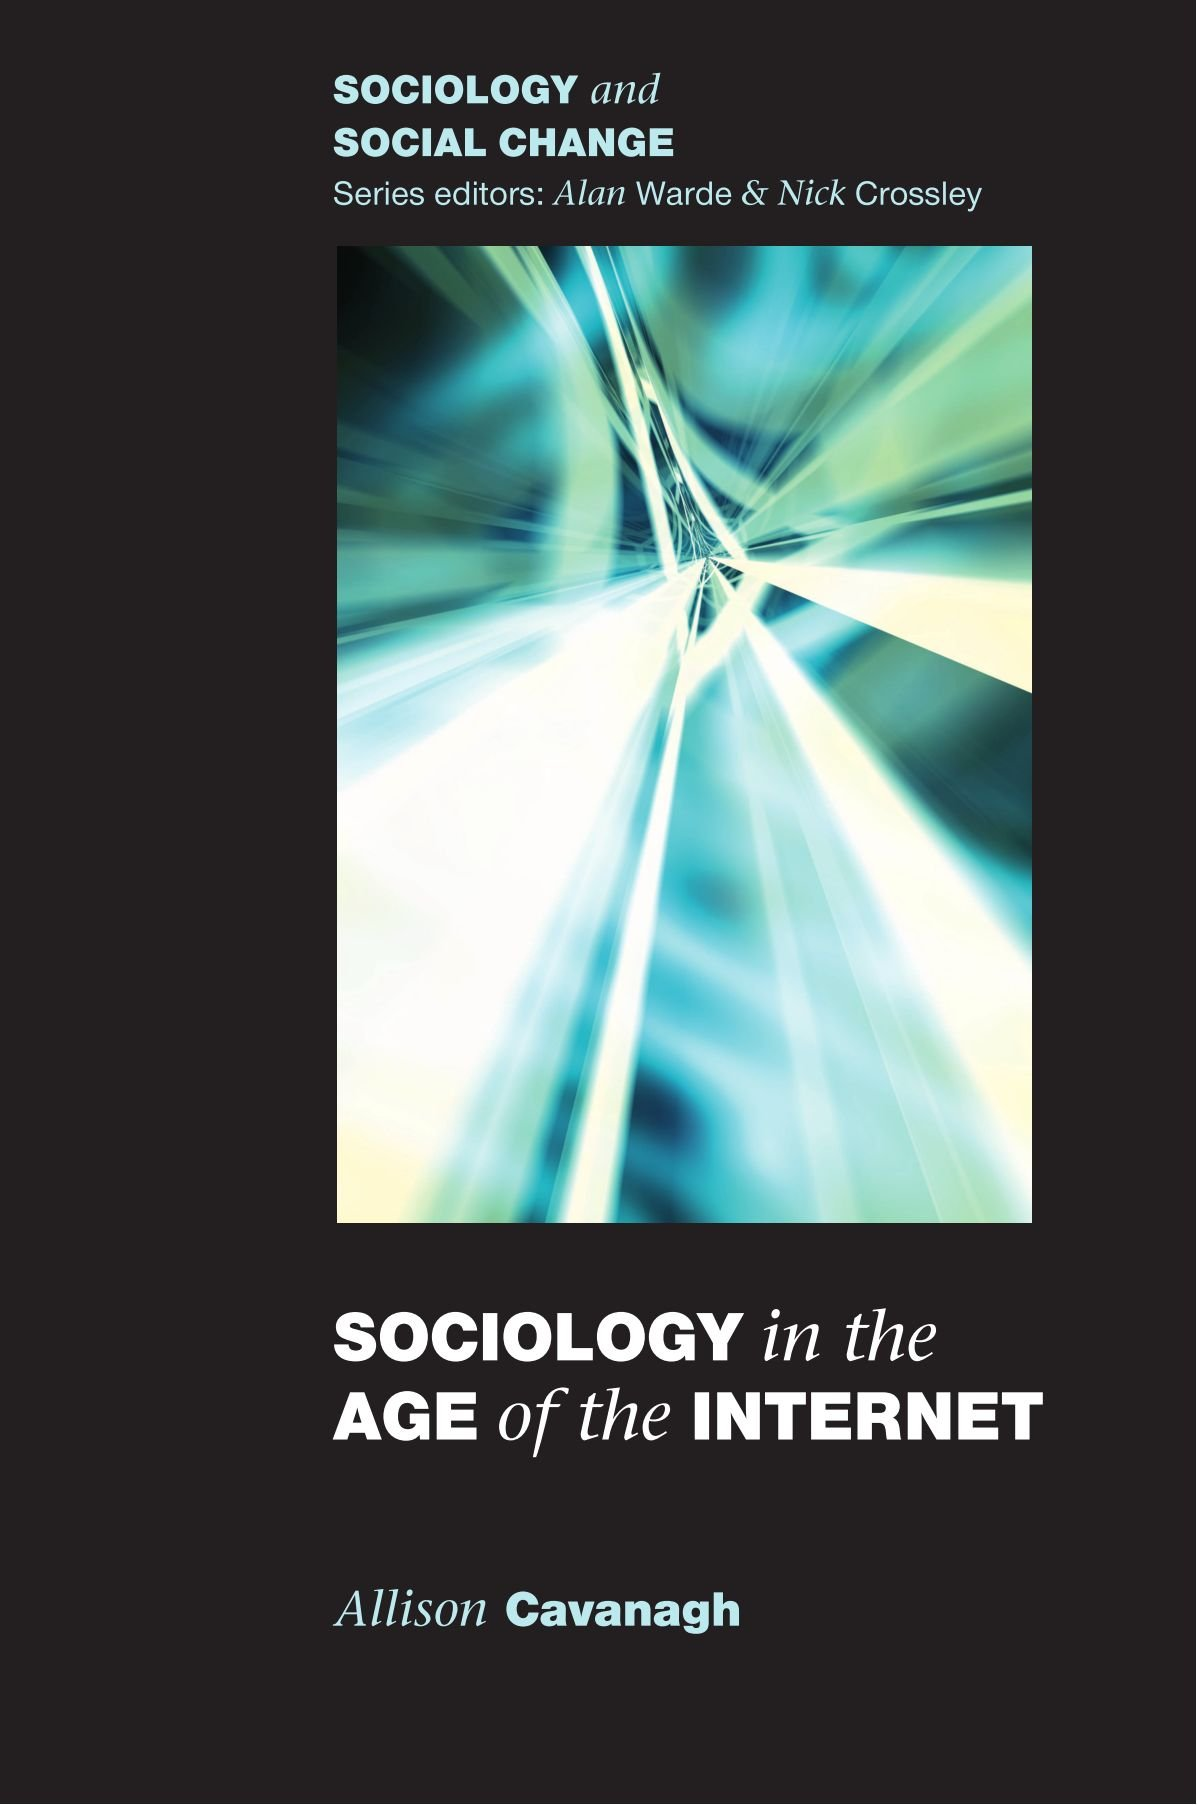 sociology in the age of the internet uk higher education oup sociology in the age of the internet uk higher education oup humanities social sciences sociology amazon co uk allison cavanagh 9780335217250 books